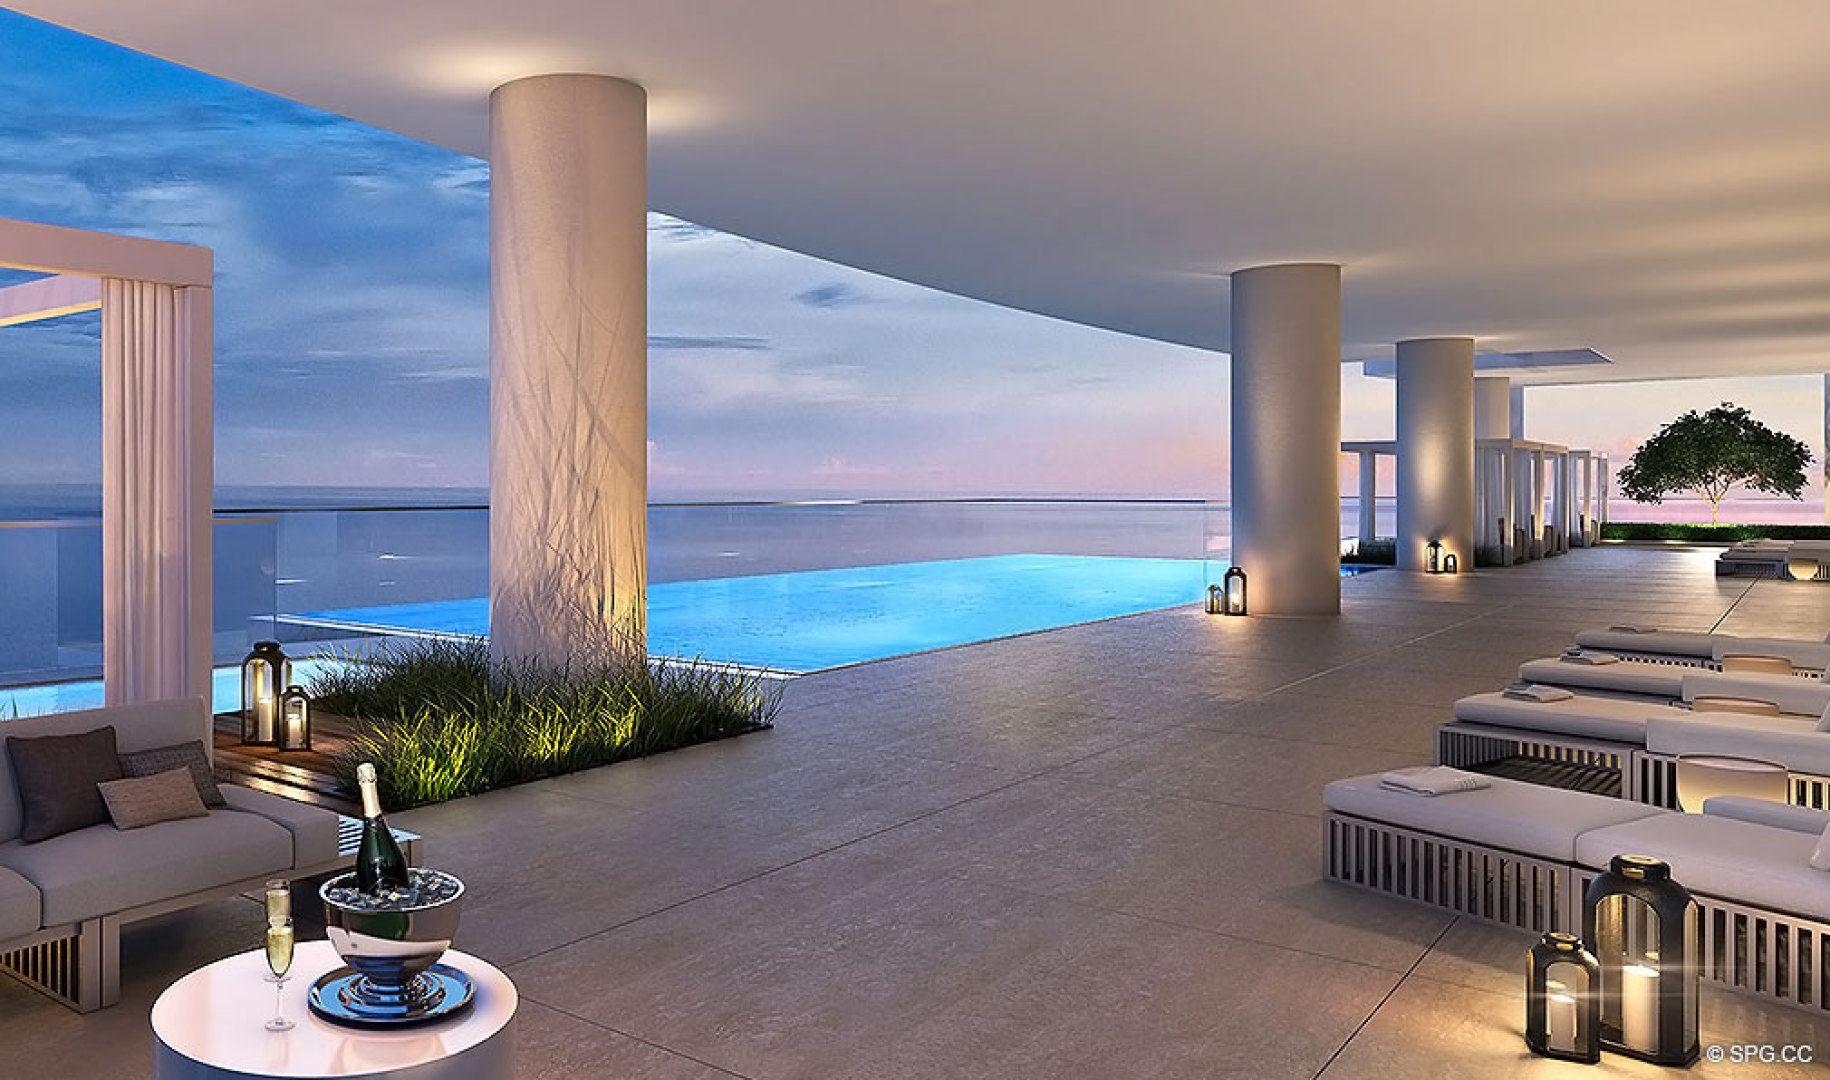 Sky Terrace and Pools at Turnberry Ocean Club, Luxury Oceanfront Condos Located at 18501 Collins Avenue, Sunny Isles Beach, Miami 33160